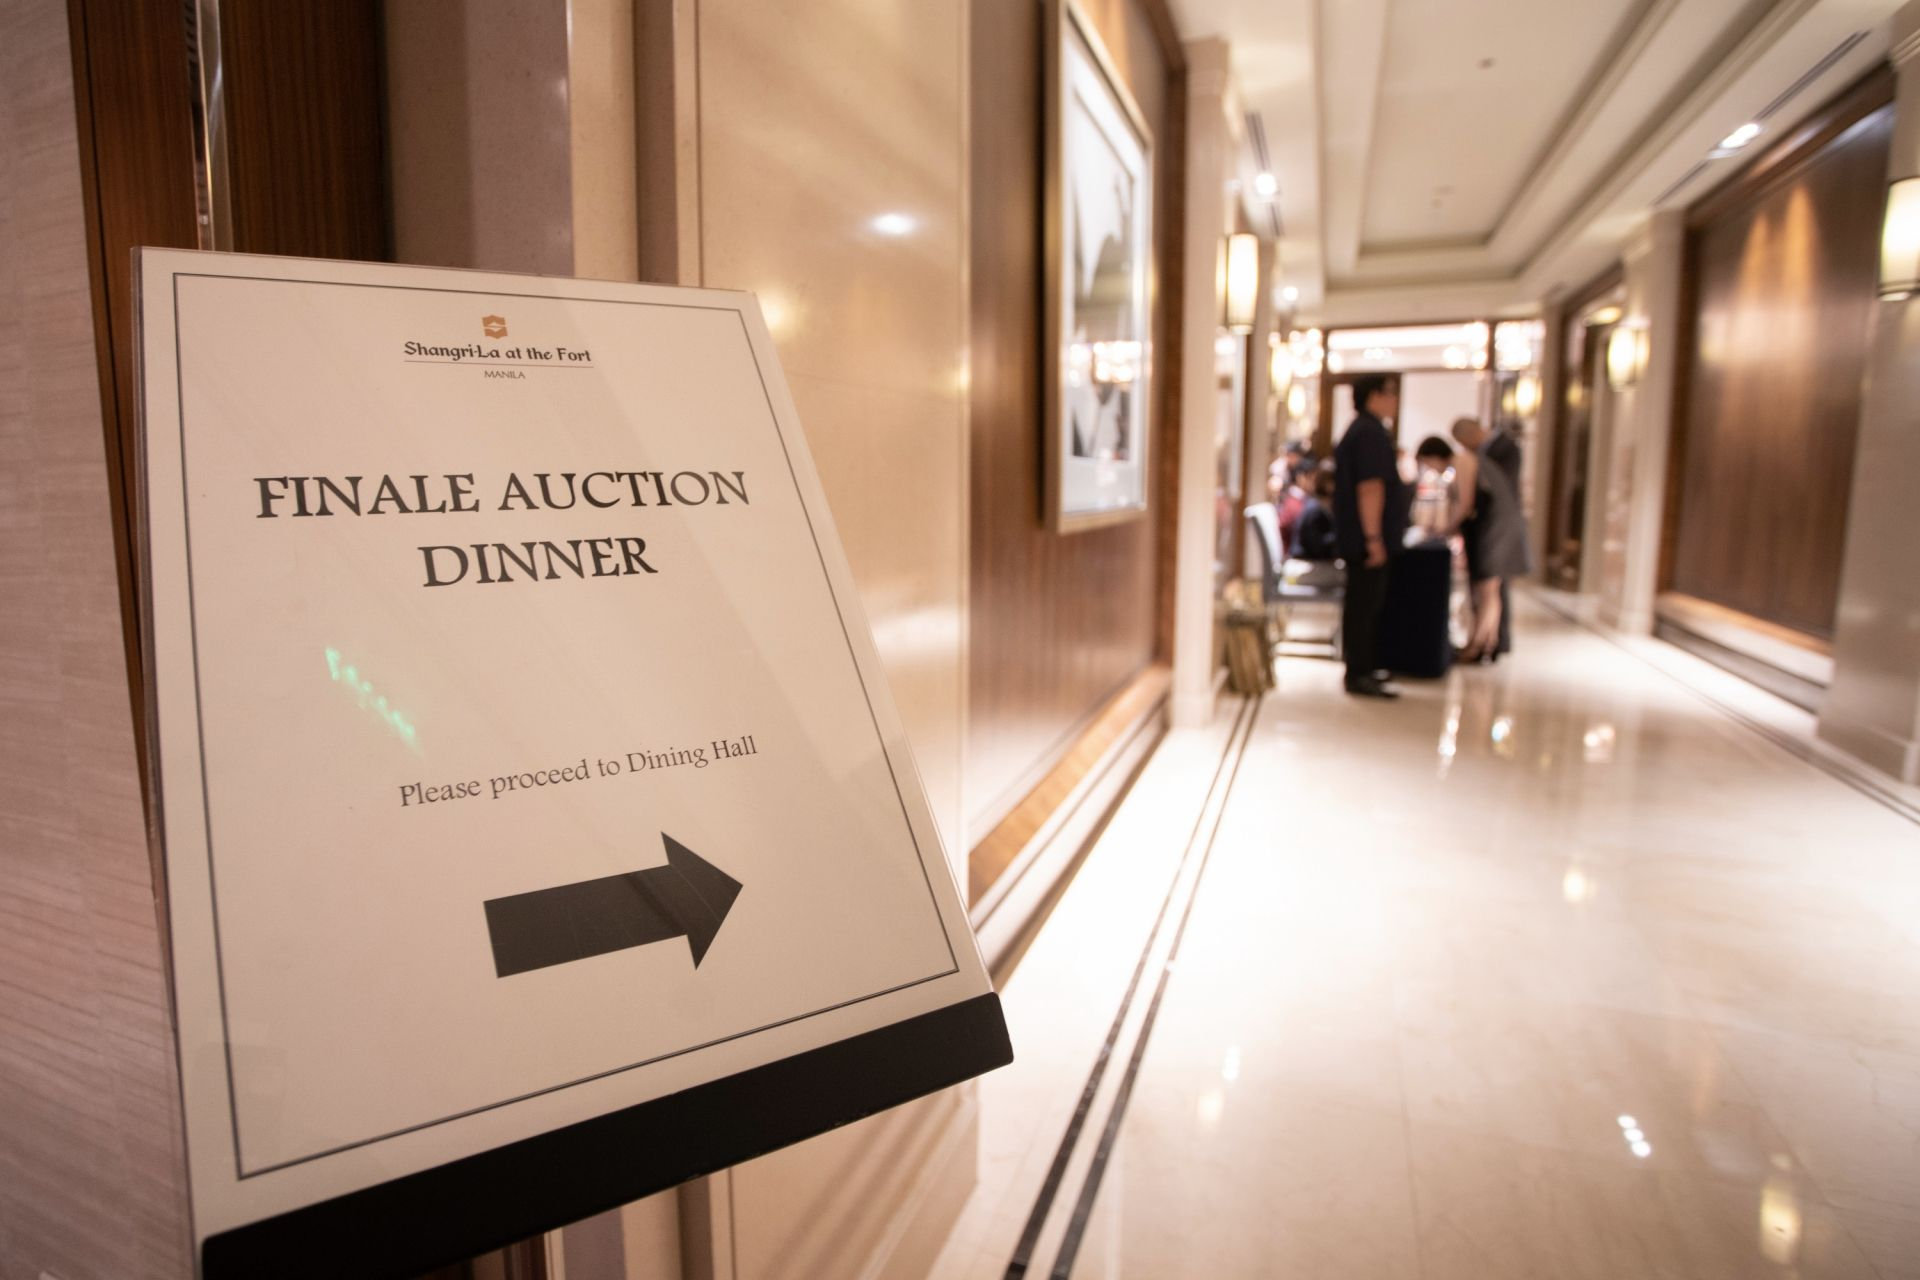 Finale Auctions Dinner and Private Preview